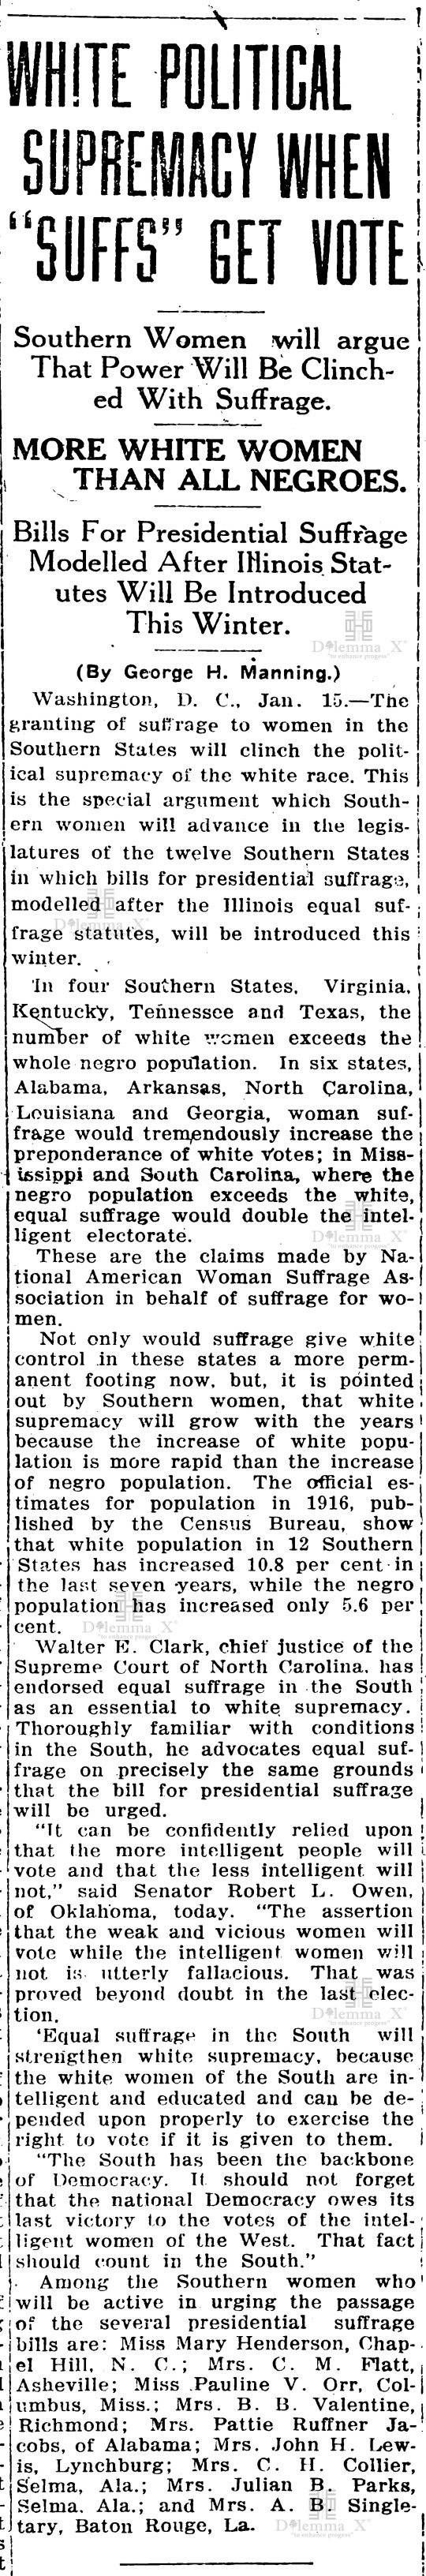 1917-january White Women's Suffrage Racism History